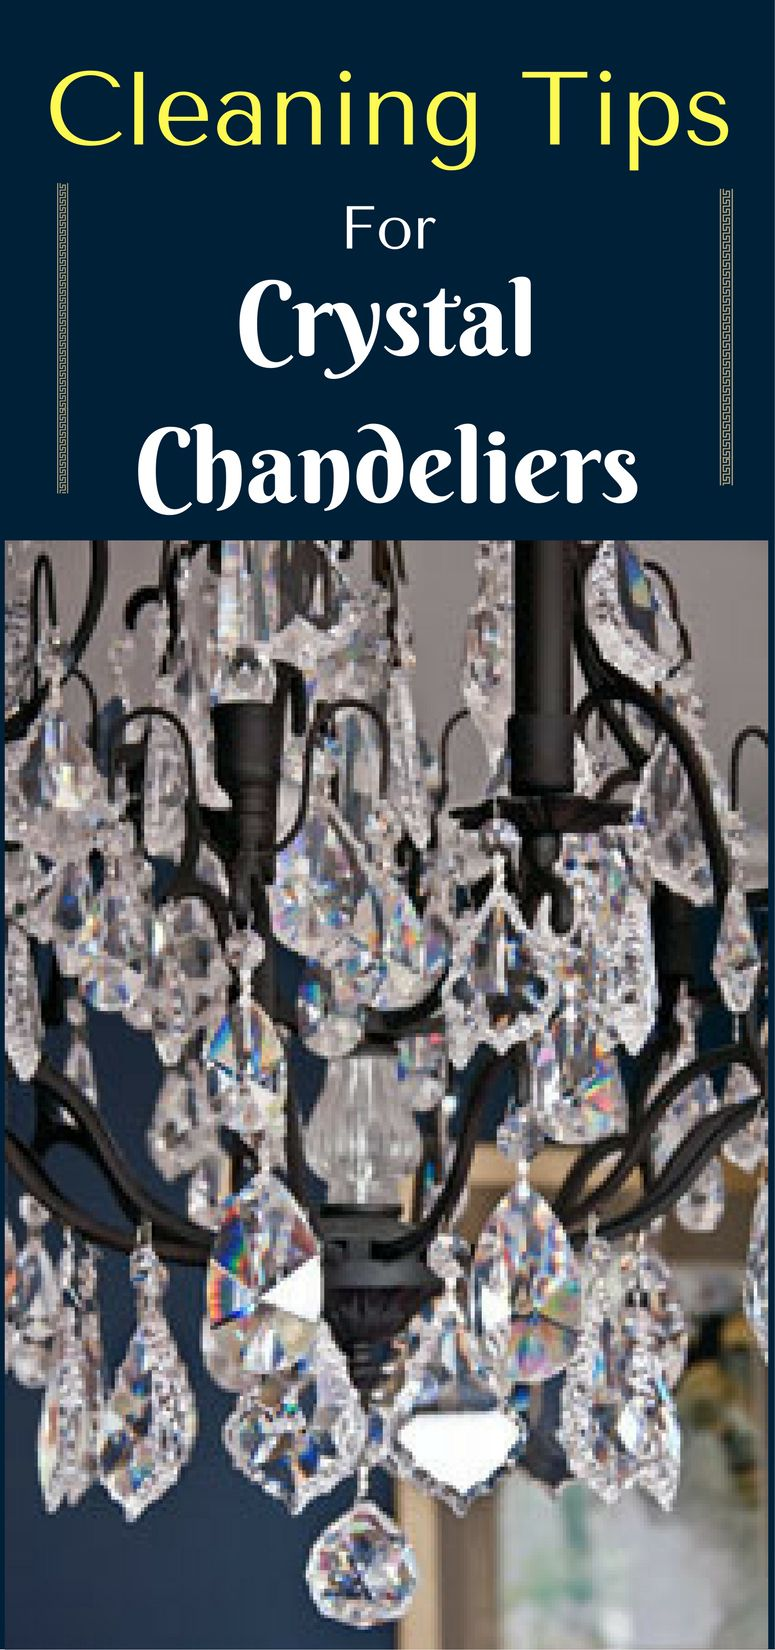 Cleaning Tips for Crystal Chandeliers Cleaning hacks